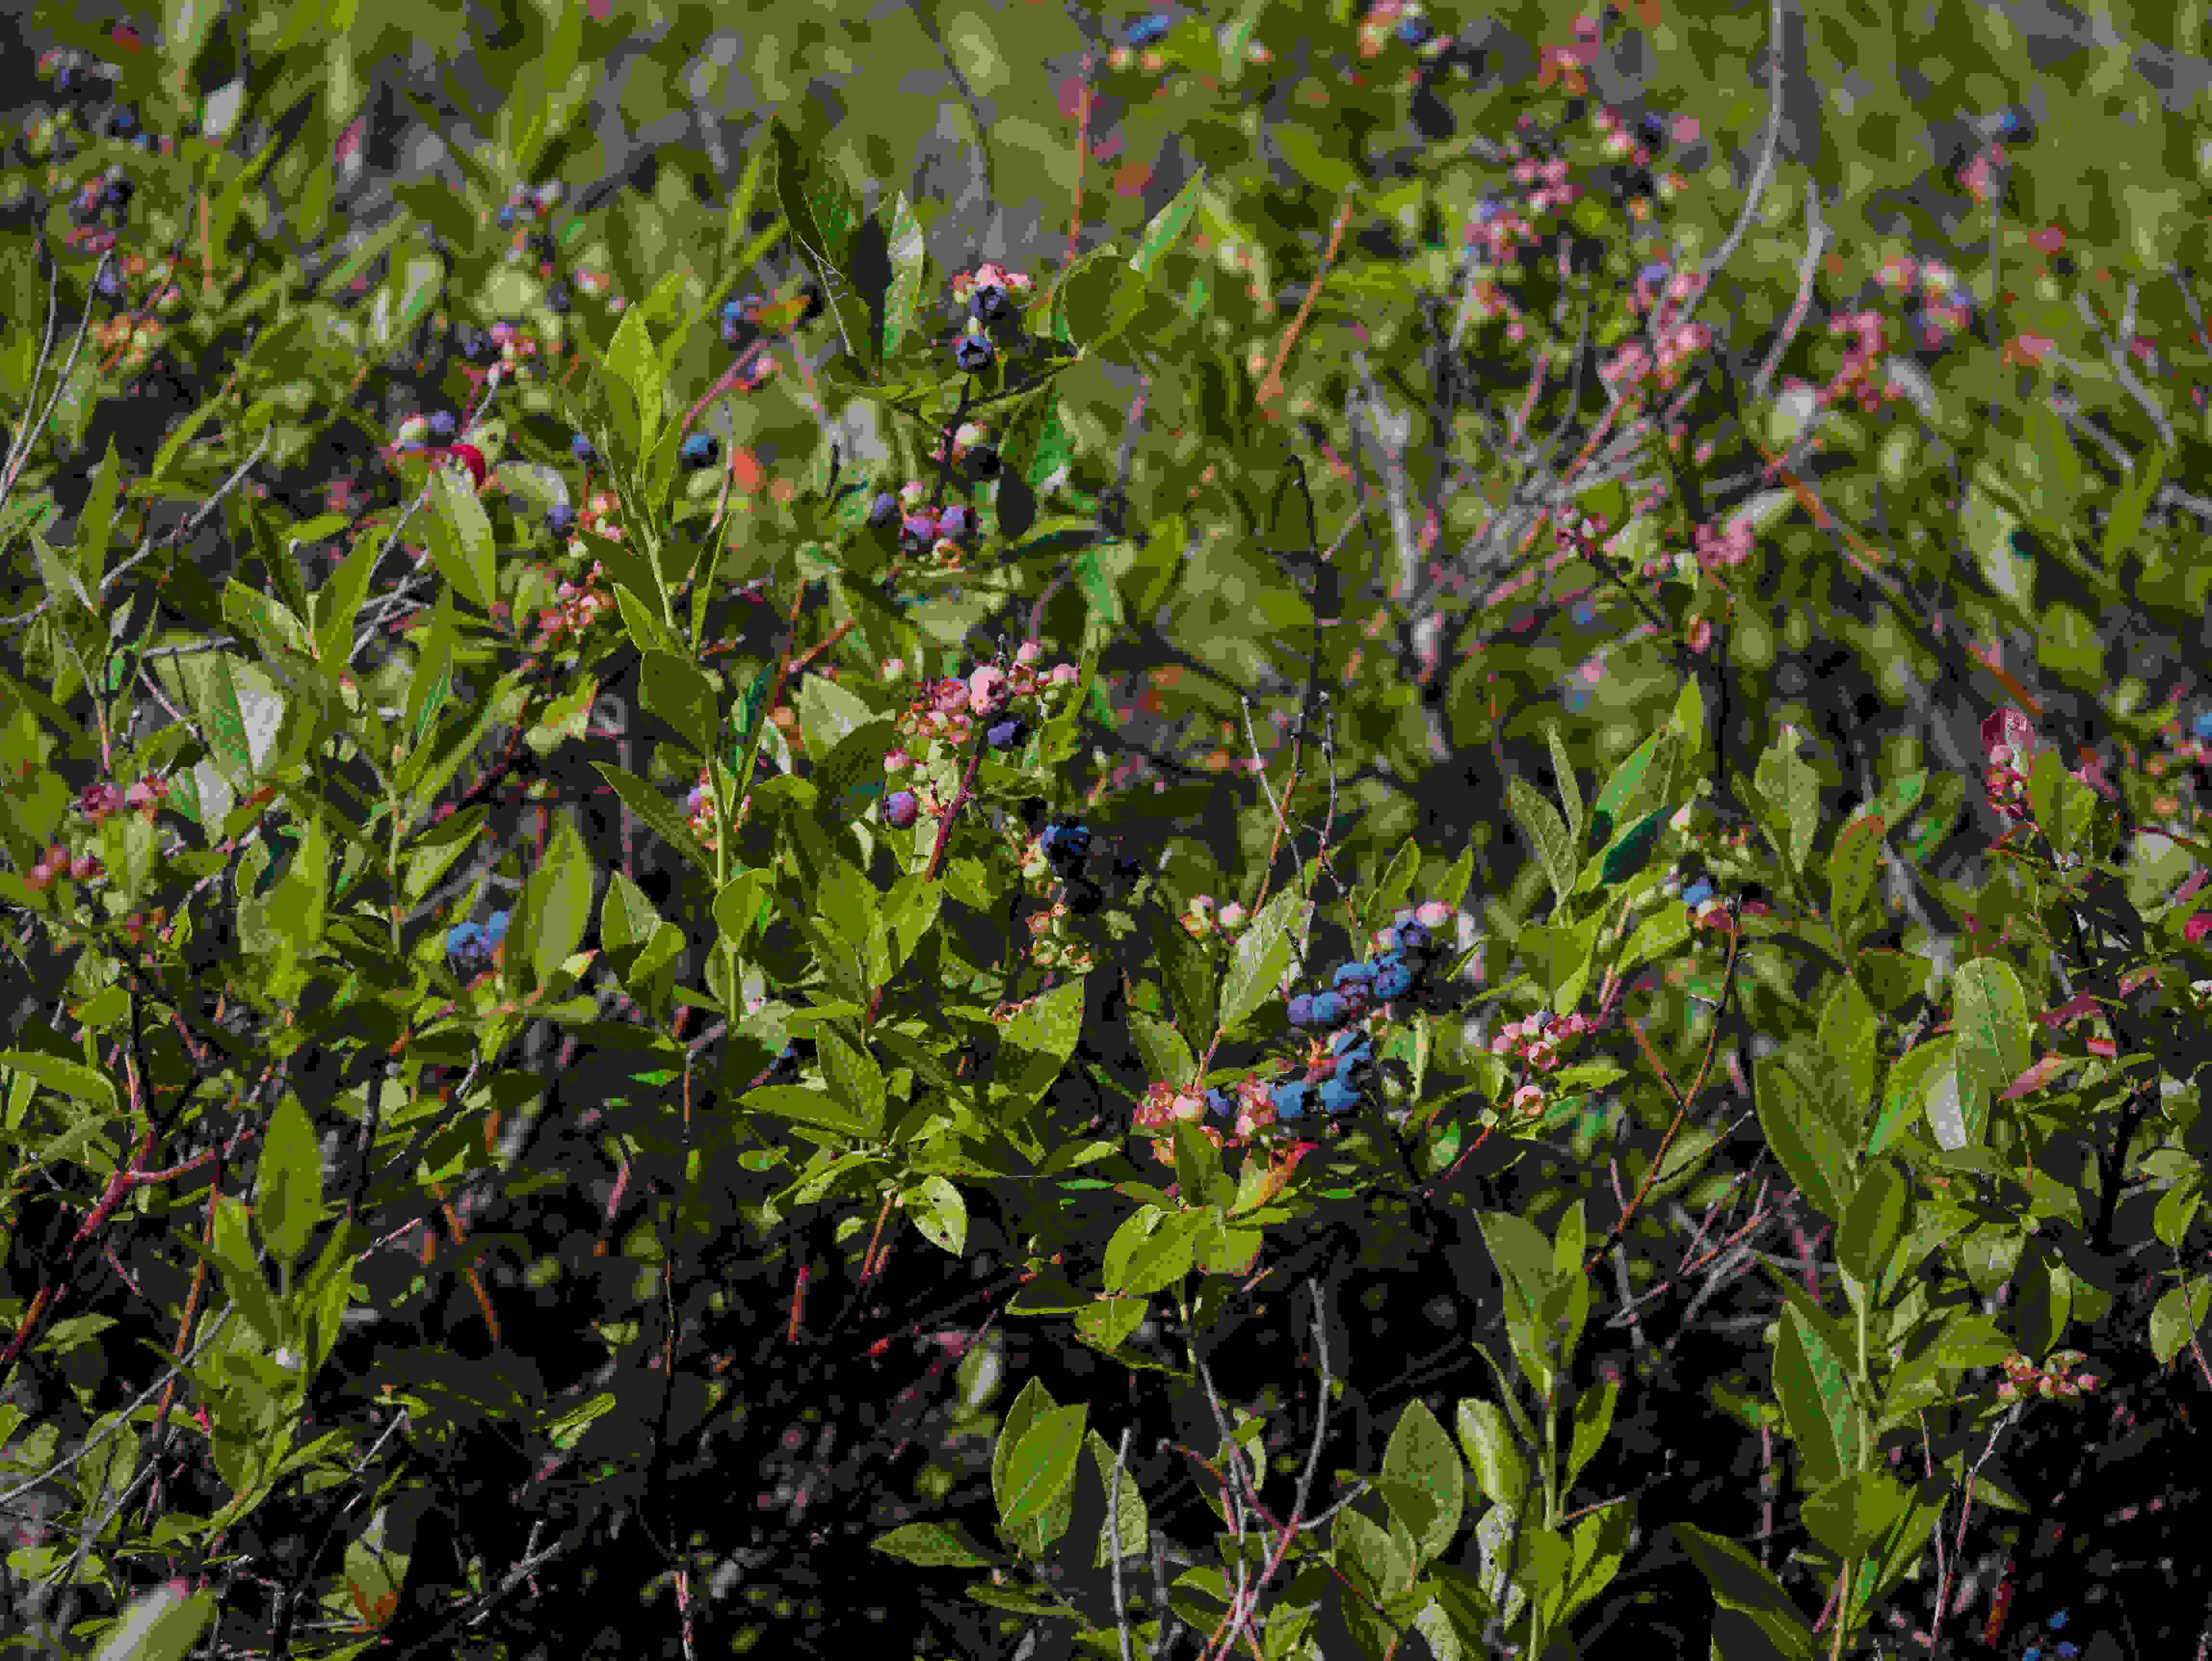 A photo taken by the Panasonic Lumix G7 of blueberry bushes.